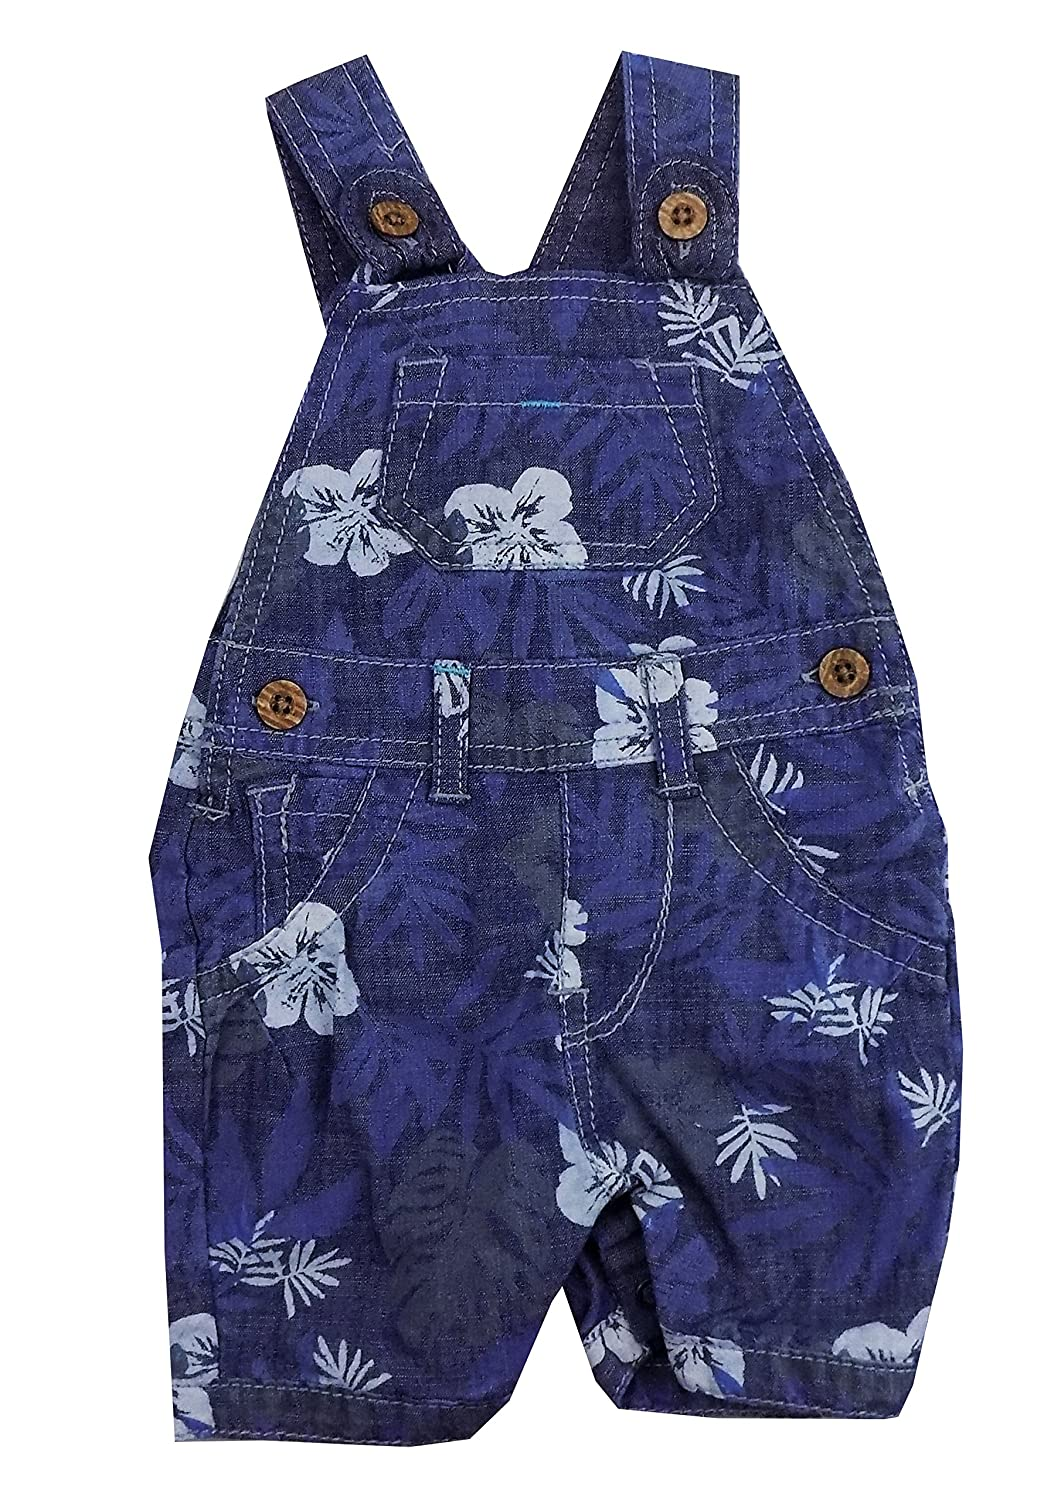 Baby Girl Dungaree Outfits Denim Blue Floral Print FS 6/9 9/12 months